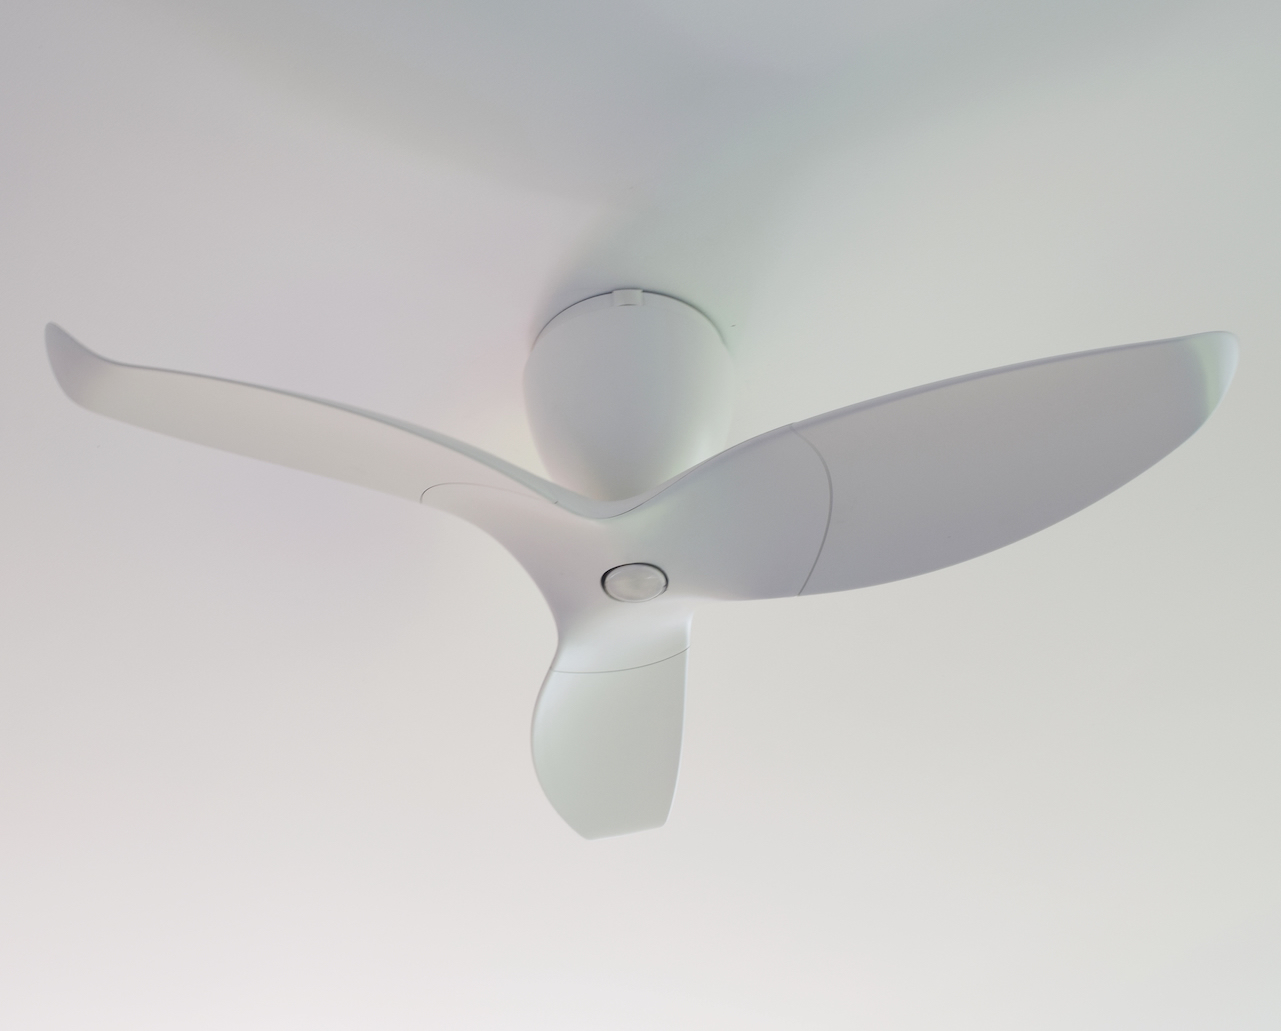 Ceiling Fans Eco Efficient Silent Safe Hvls Philippines Haiku Fan By Big Ass Products